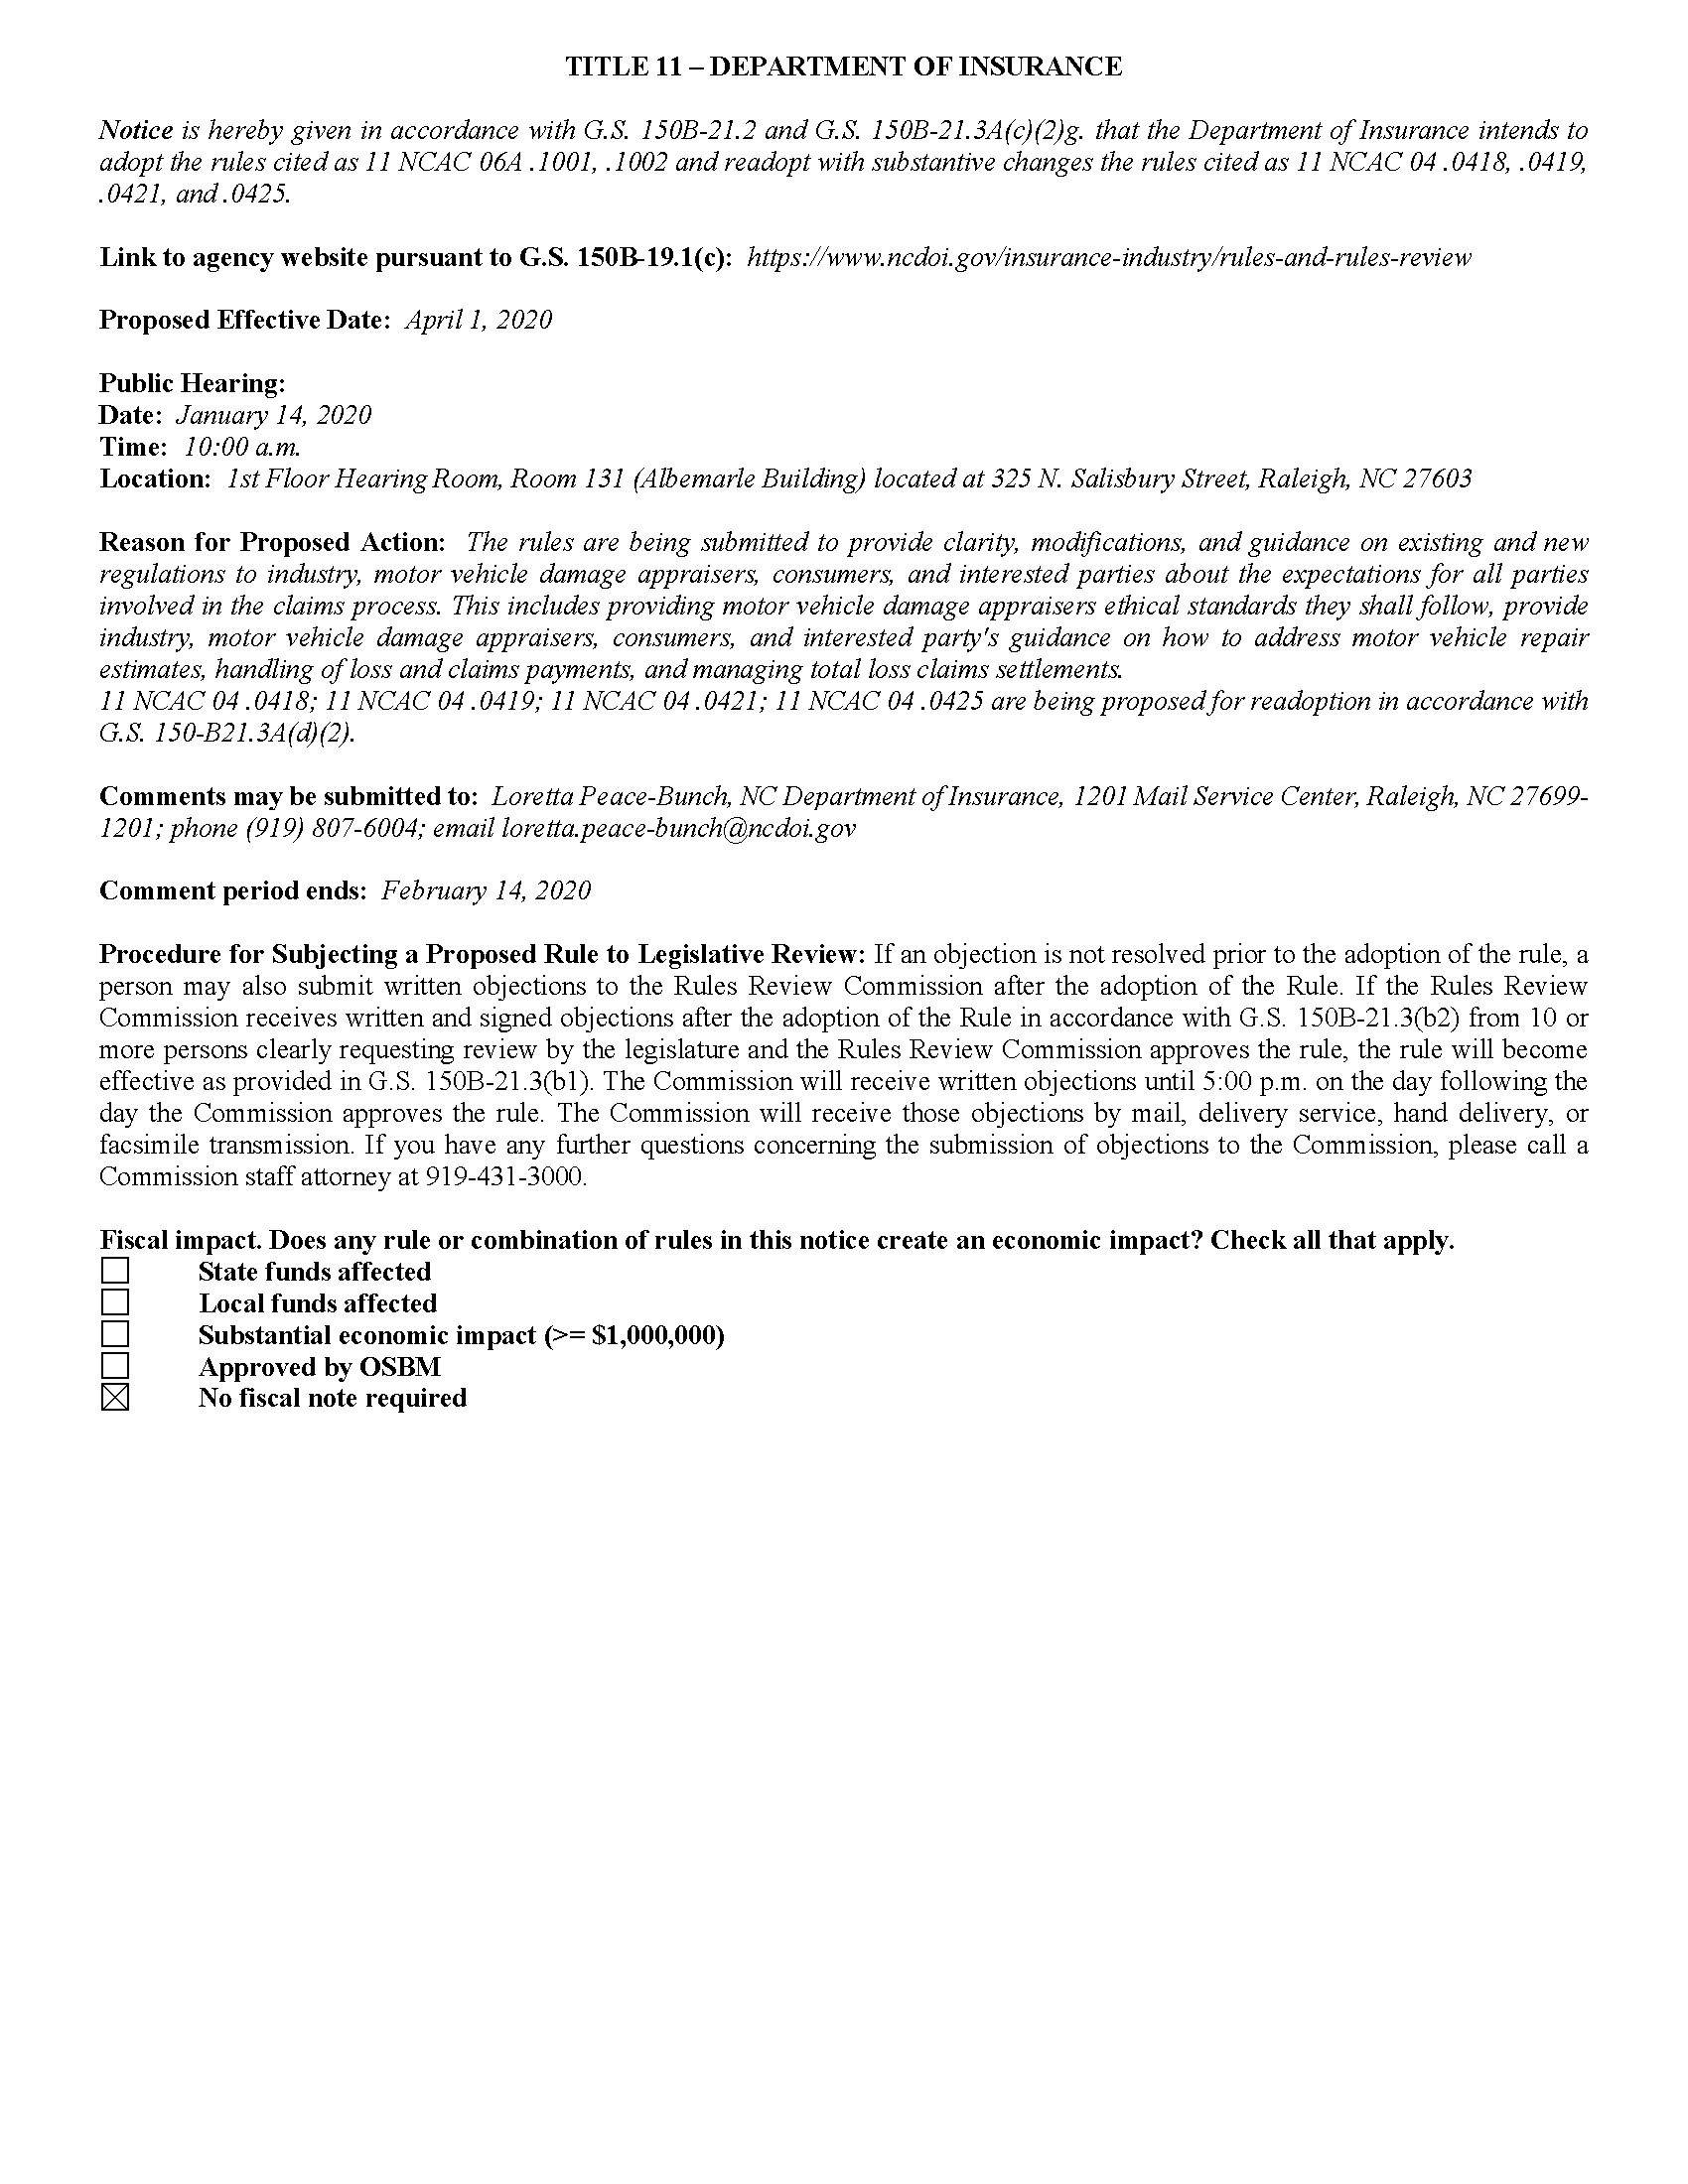 North Carolina – New Rules for Licensed Motor Vehicle Damage Appraisers_Page_1